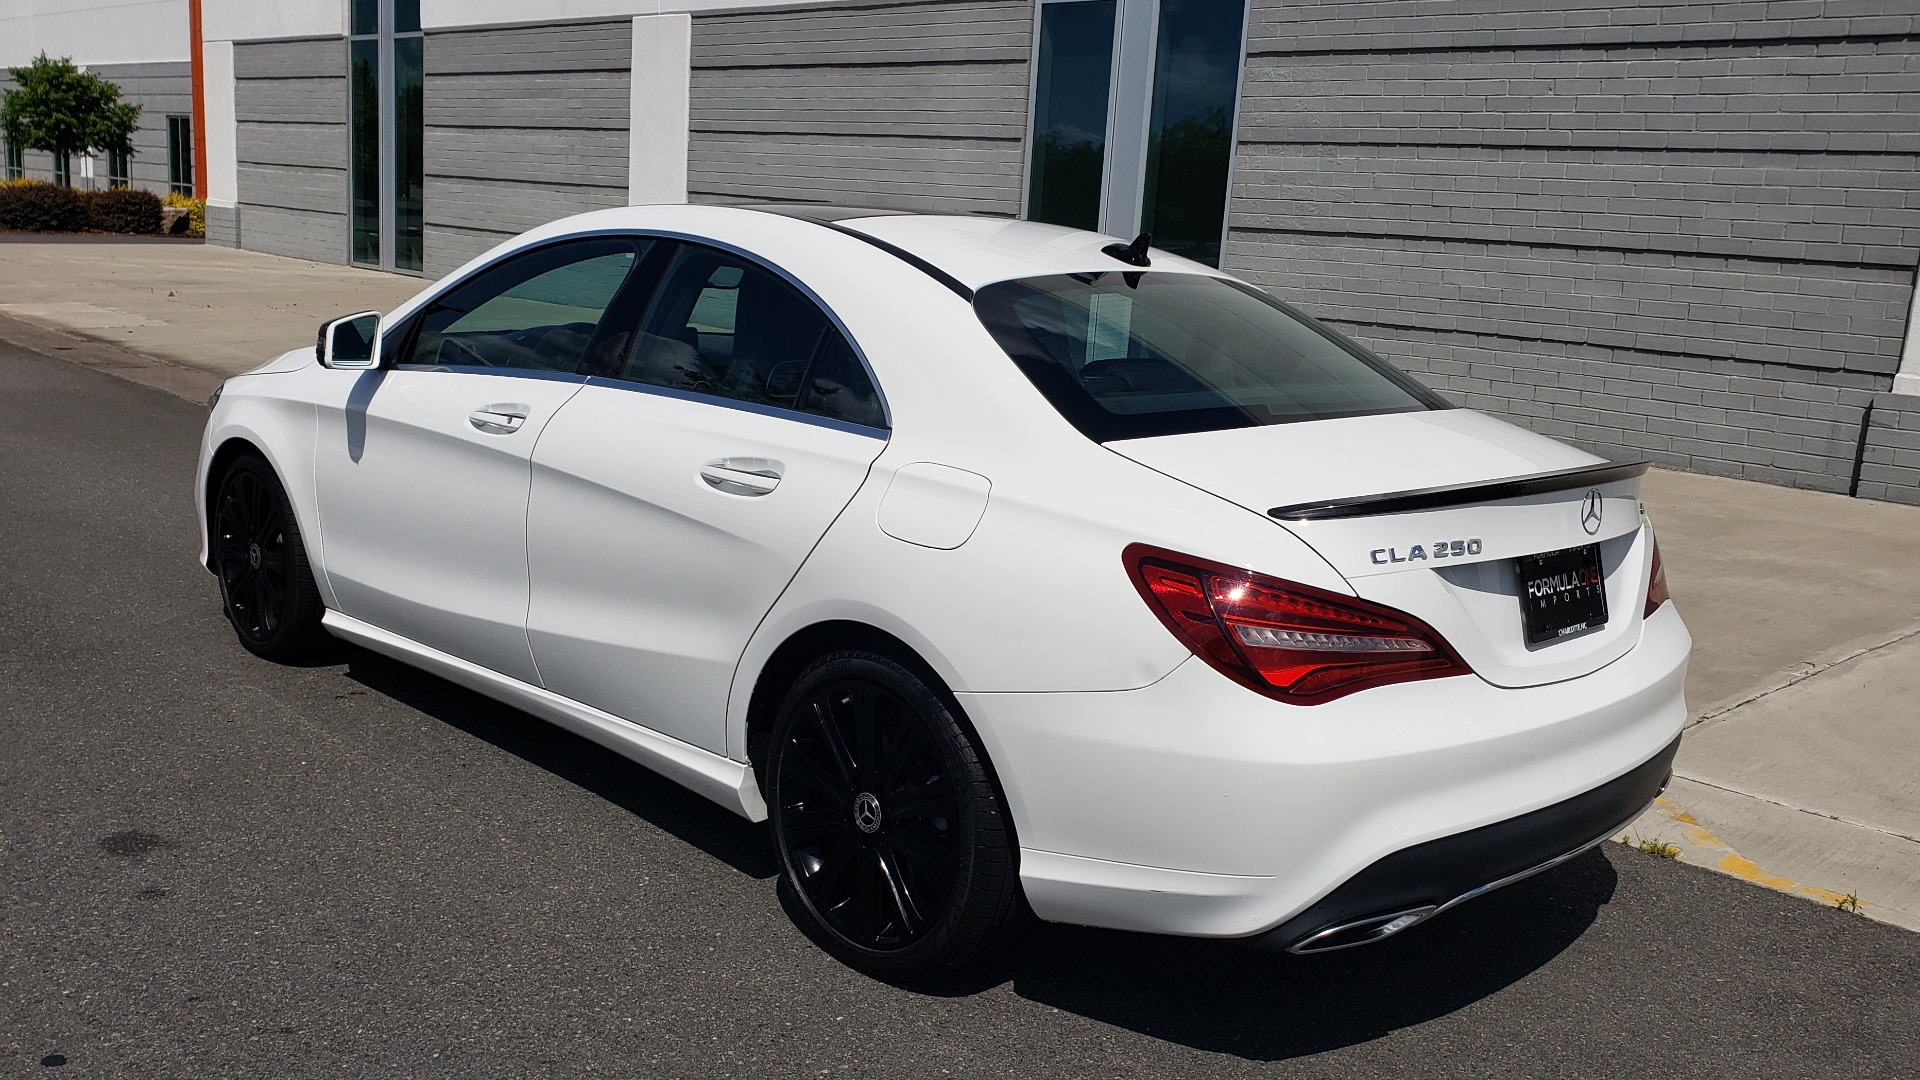 Used 2018 Mercedes-Benz CLA 250 4MATIC COUPE / PREMIUM / PANO-ROOF / APPLE / REARVIEW for sale Sold at Formula Imports in Charlotte NC 28227 6